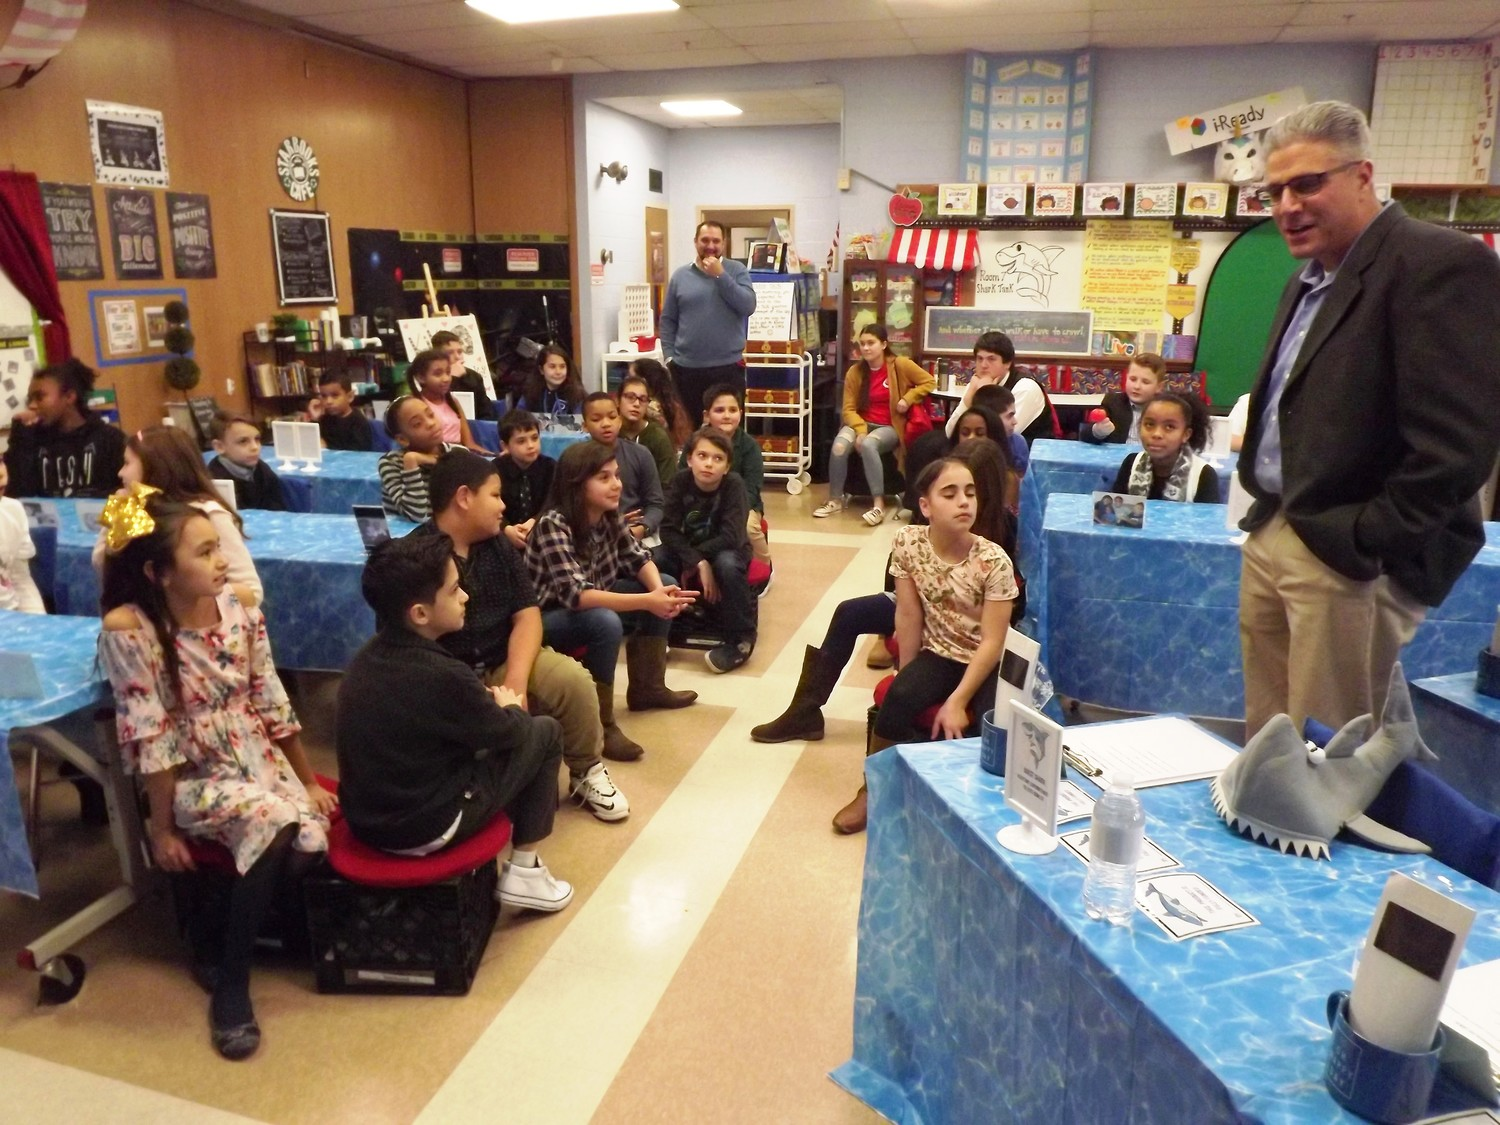 Whiteknact School Shark Tank program last month.